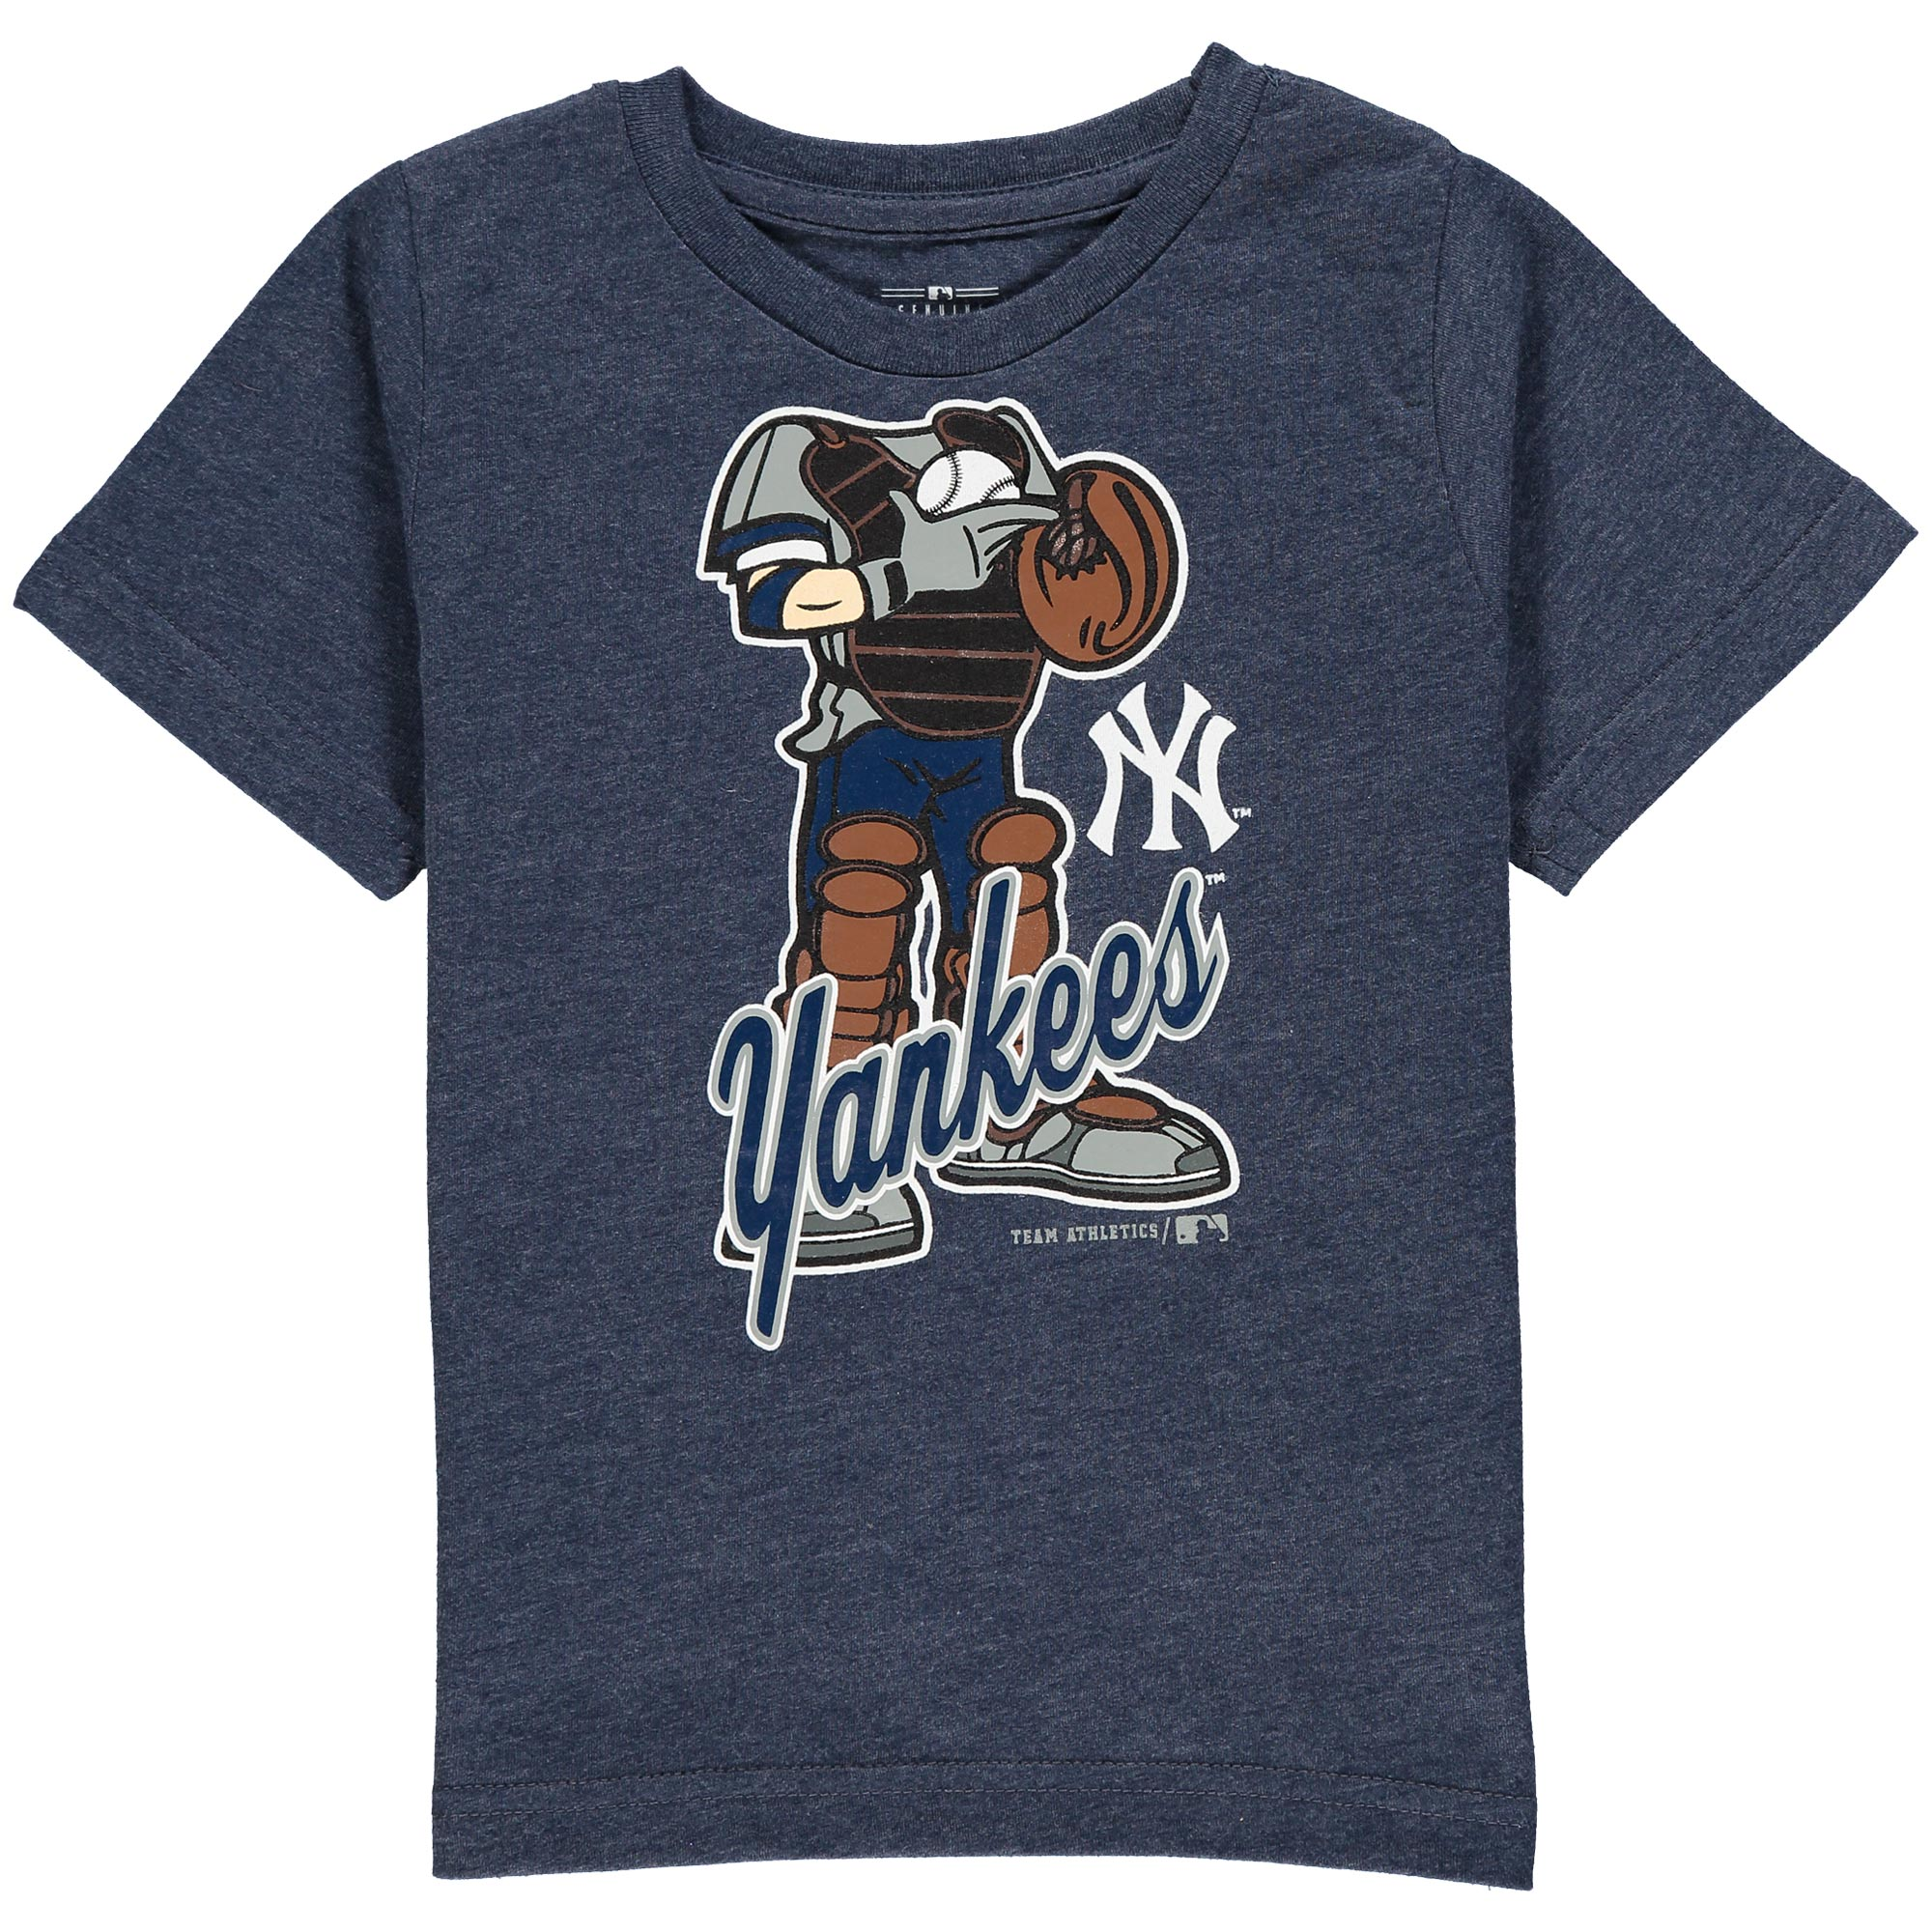 MLB NEW YORK YANKEES TEE Short Sleeve Boys 50% Cotton 50% Poly Team Color 12M-4T